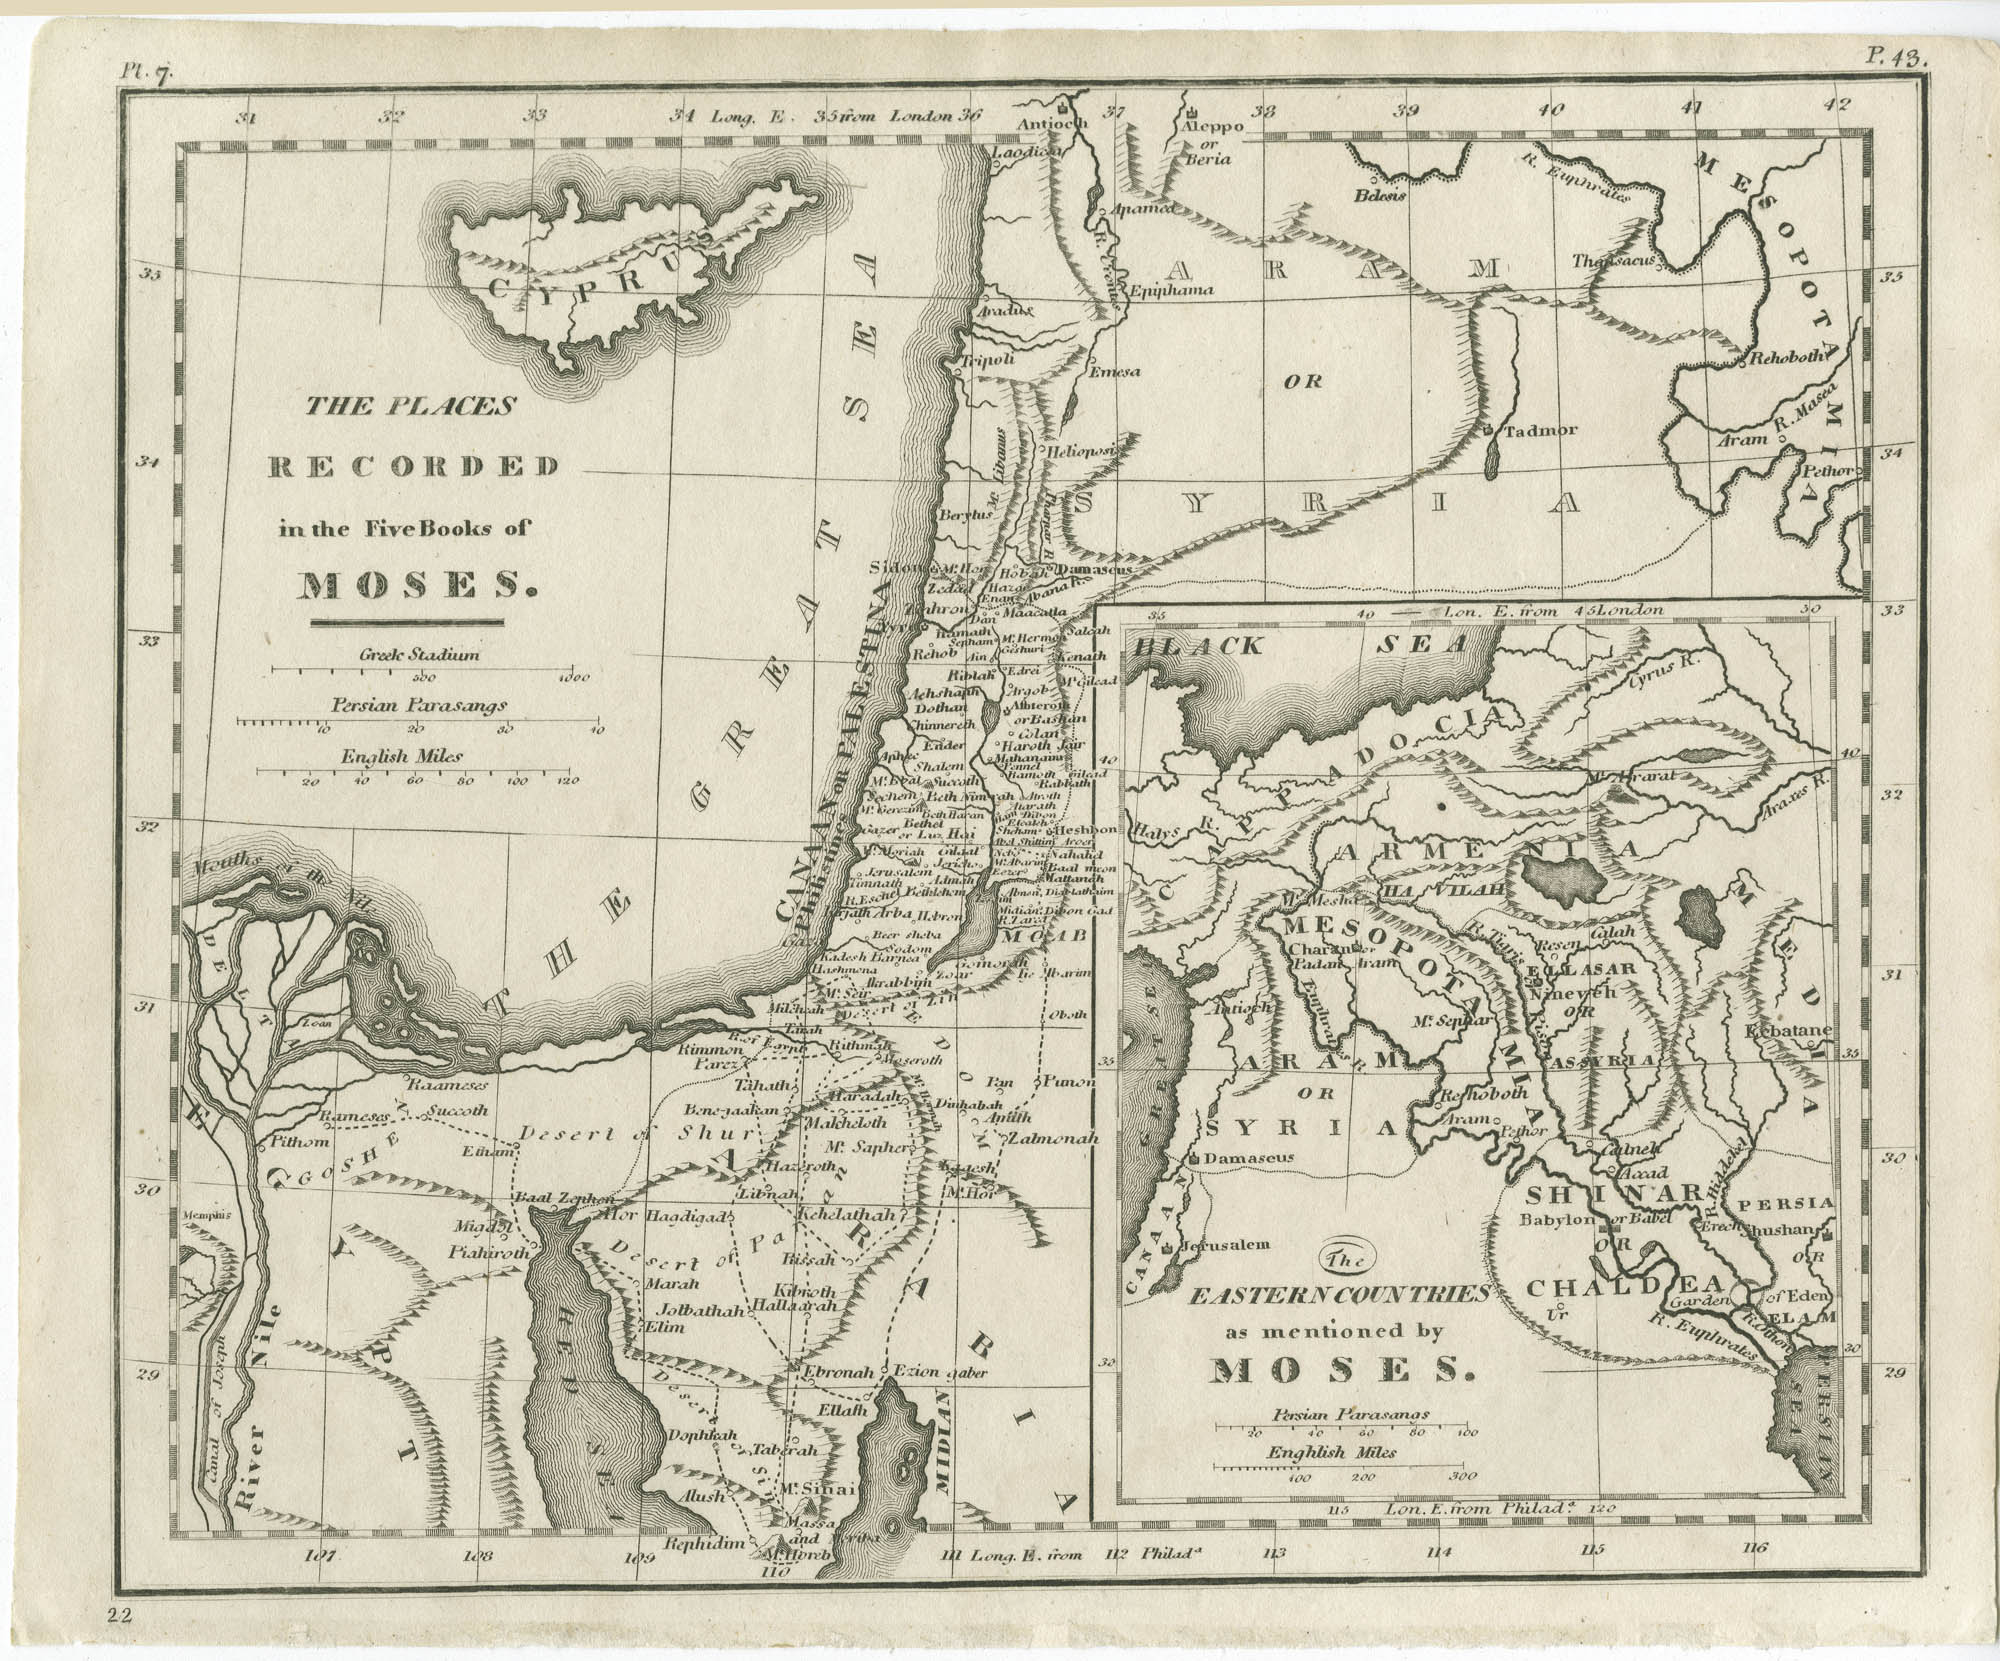 The places recorded in the Five Books of Moses